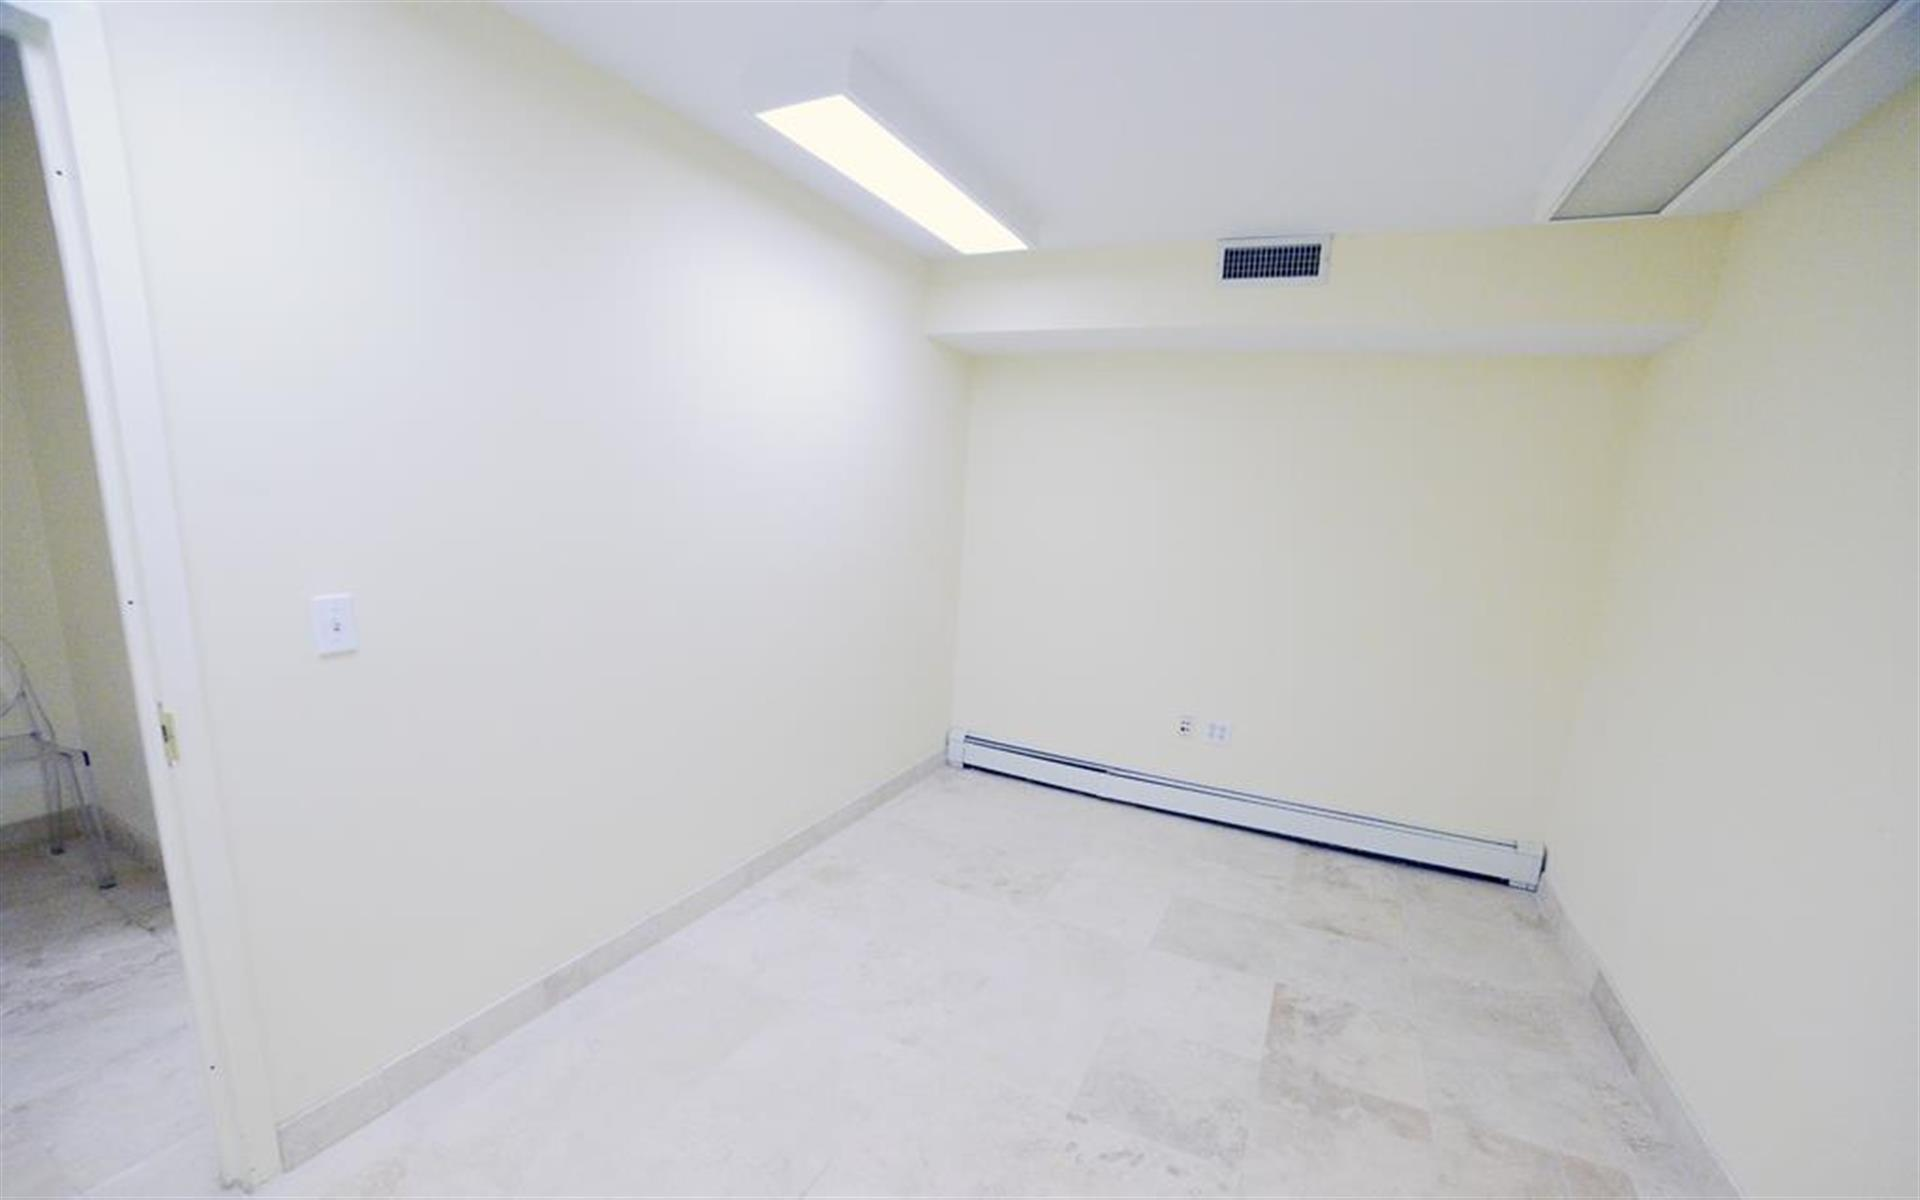 Space 69 - B5 - 6 person office